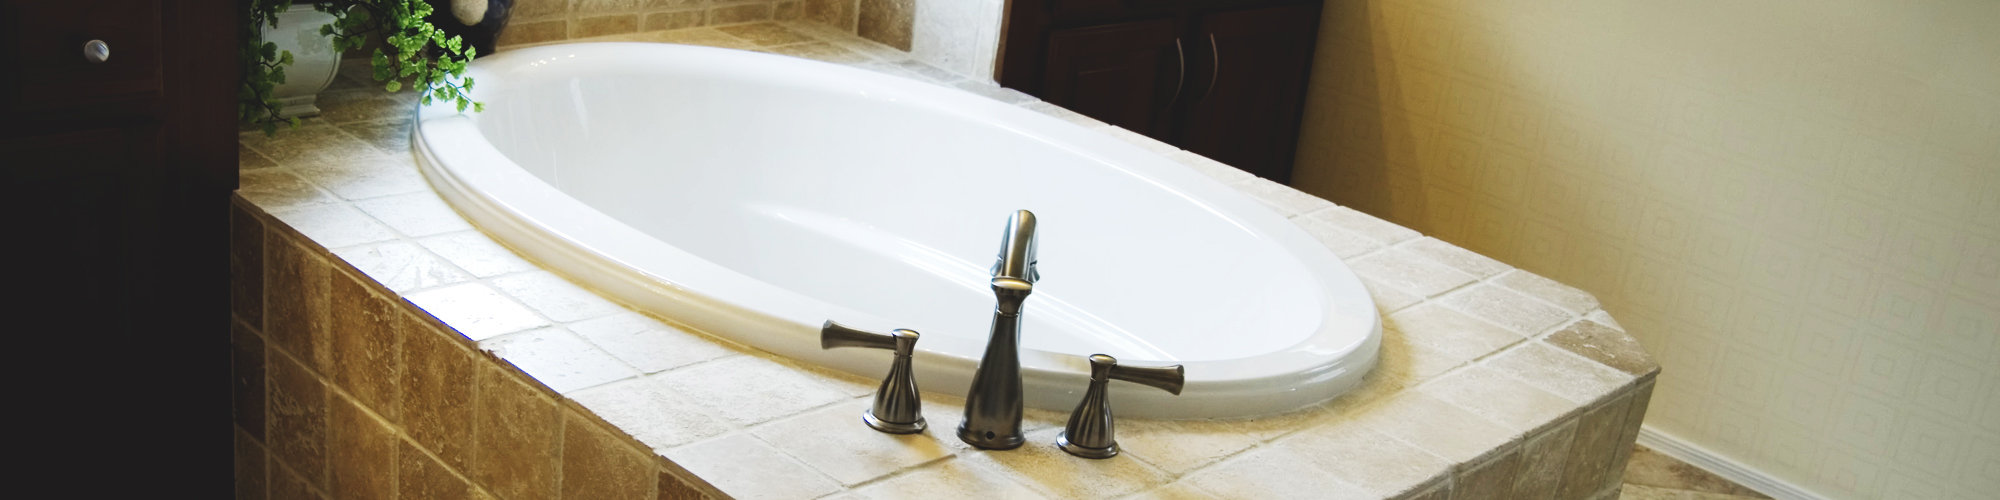 Bathroom Faucets San Jose Ca reglazed bathtub, unsightly bathroom fixtures | san jose, ca